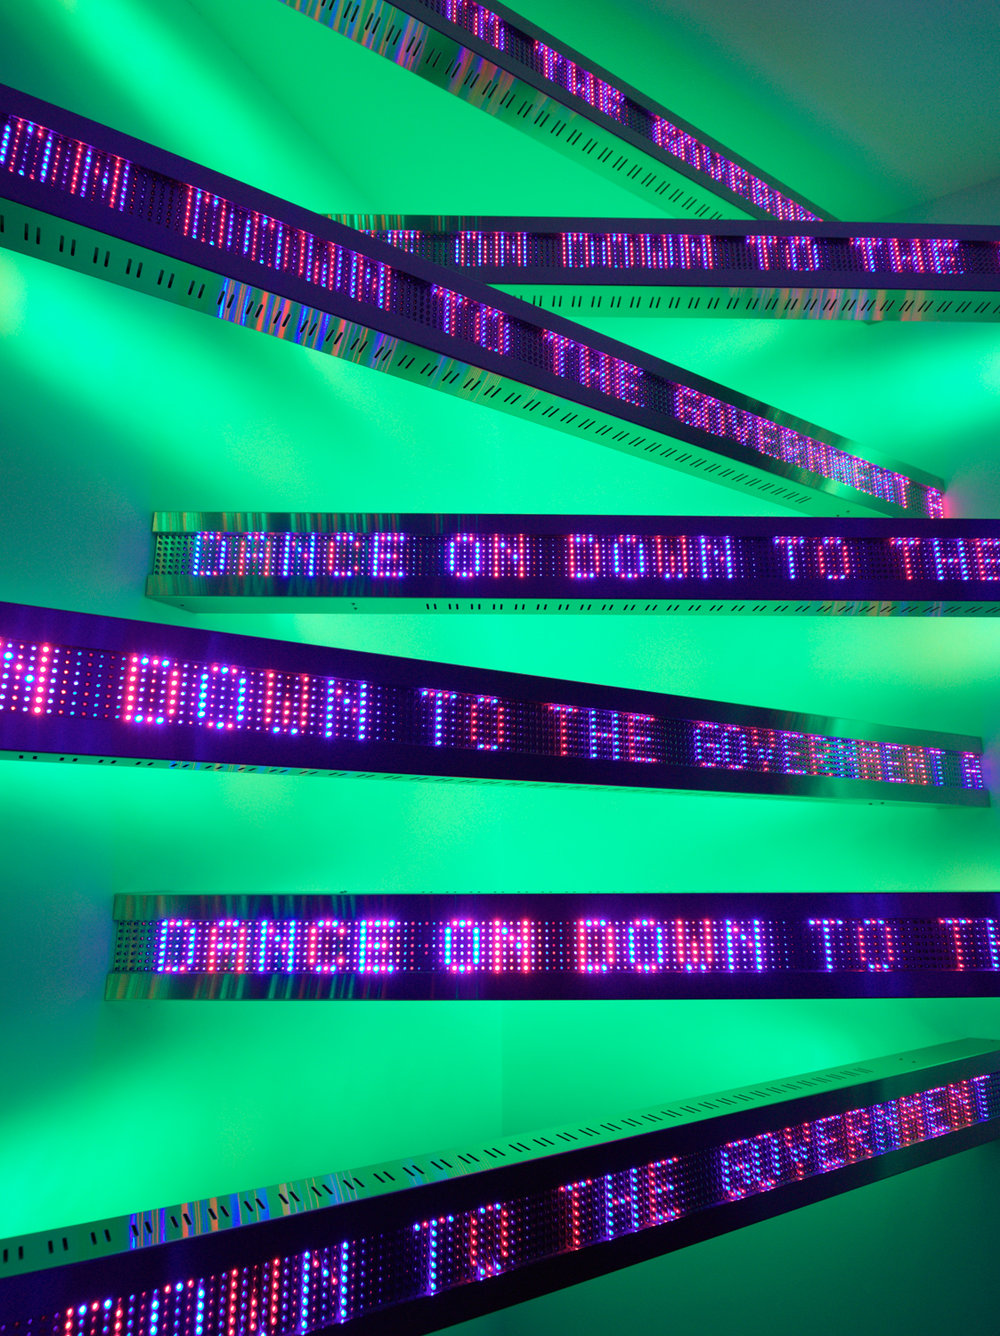 Jenny Holzer,  New Corner , 2011 (detail). © 2011 Jenny Holzer, member Artists Rights Society (ARS), NY Photo: Sang Tae Kim. Courtesy of the artist.